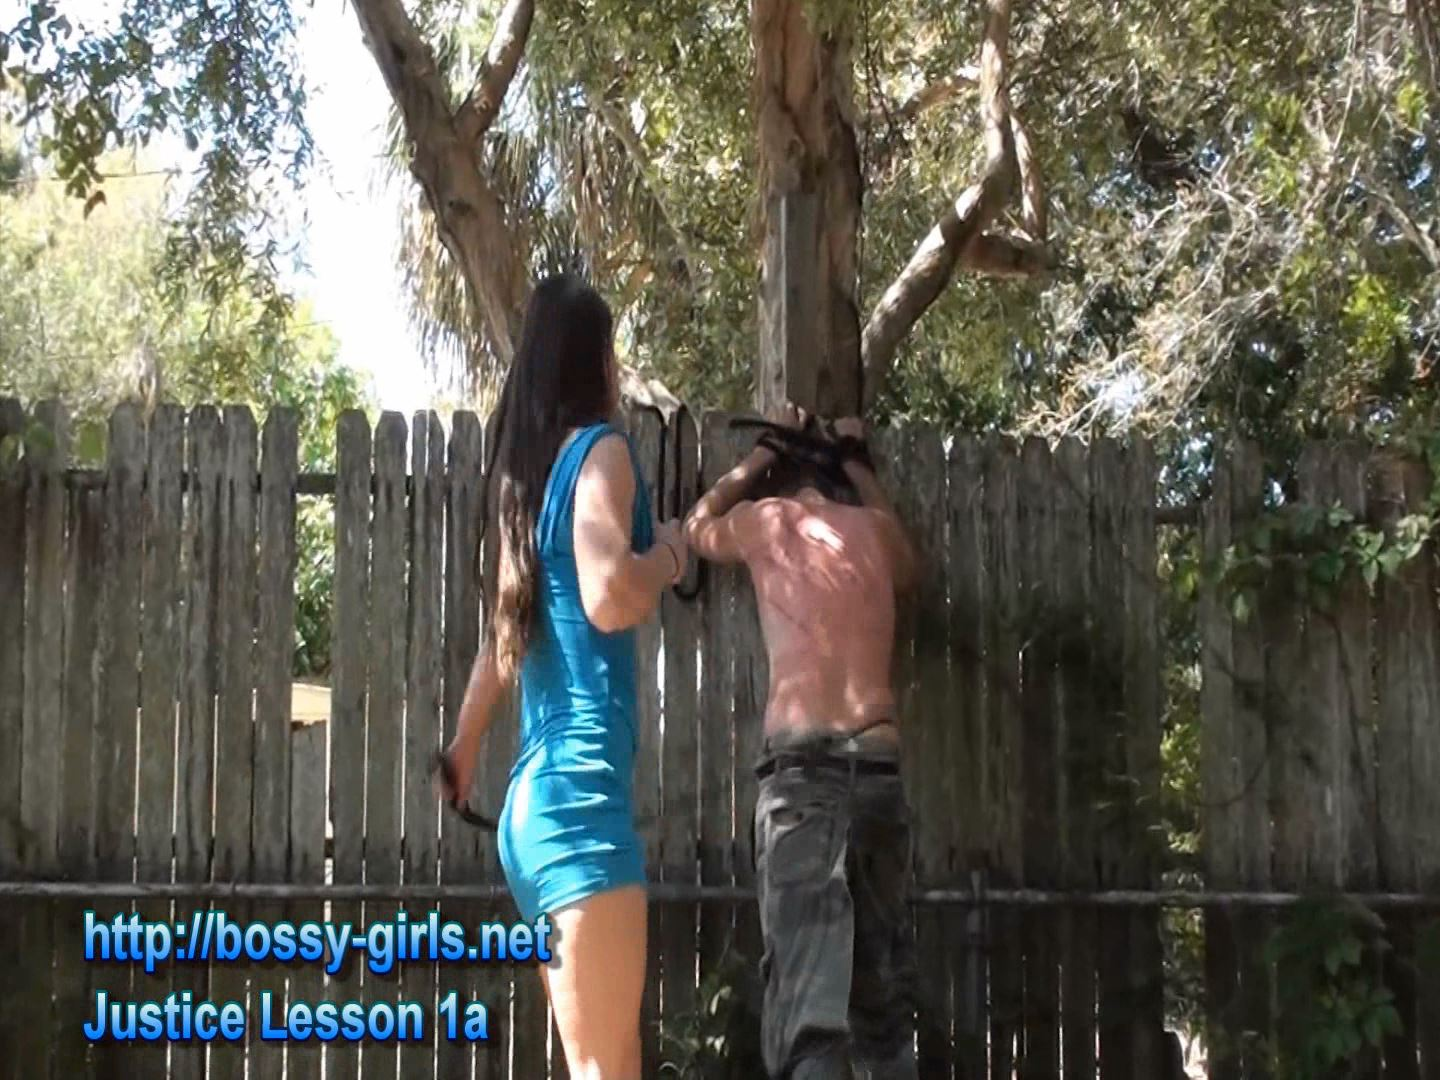 Mistress Cindy, Mistress Carly In Scene: JUSTICE LESSON 2 - BOSSY GIRLS - FULL HD/1080p/WMV